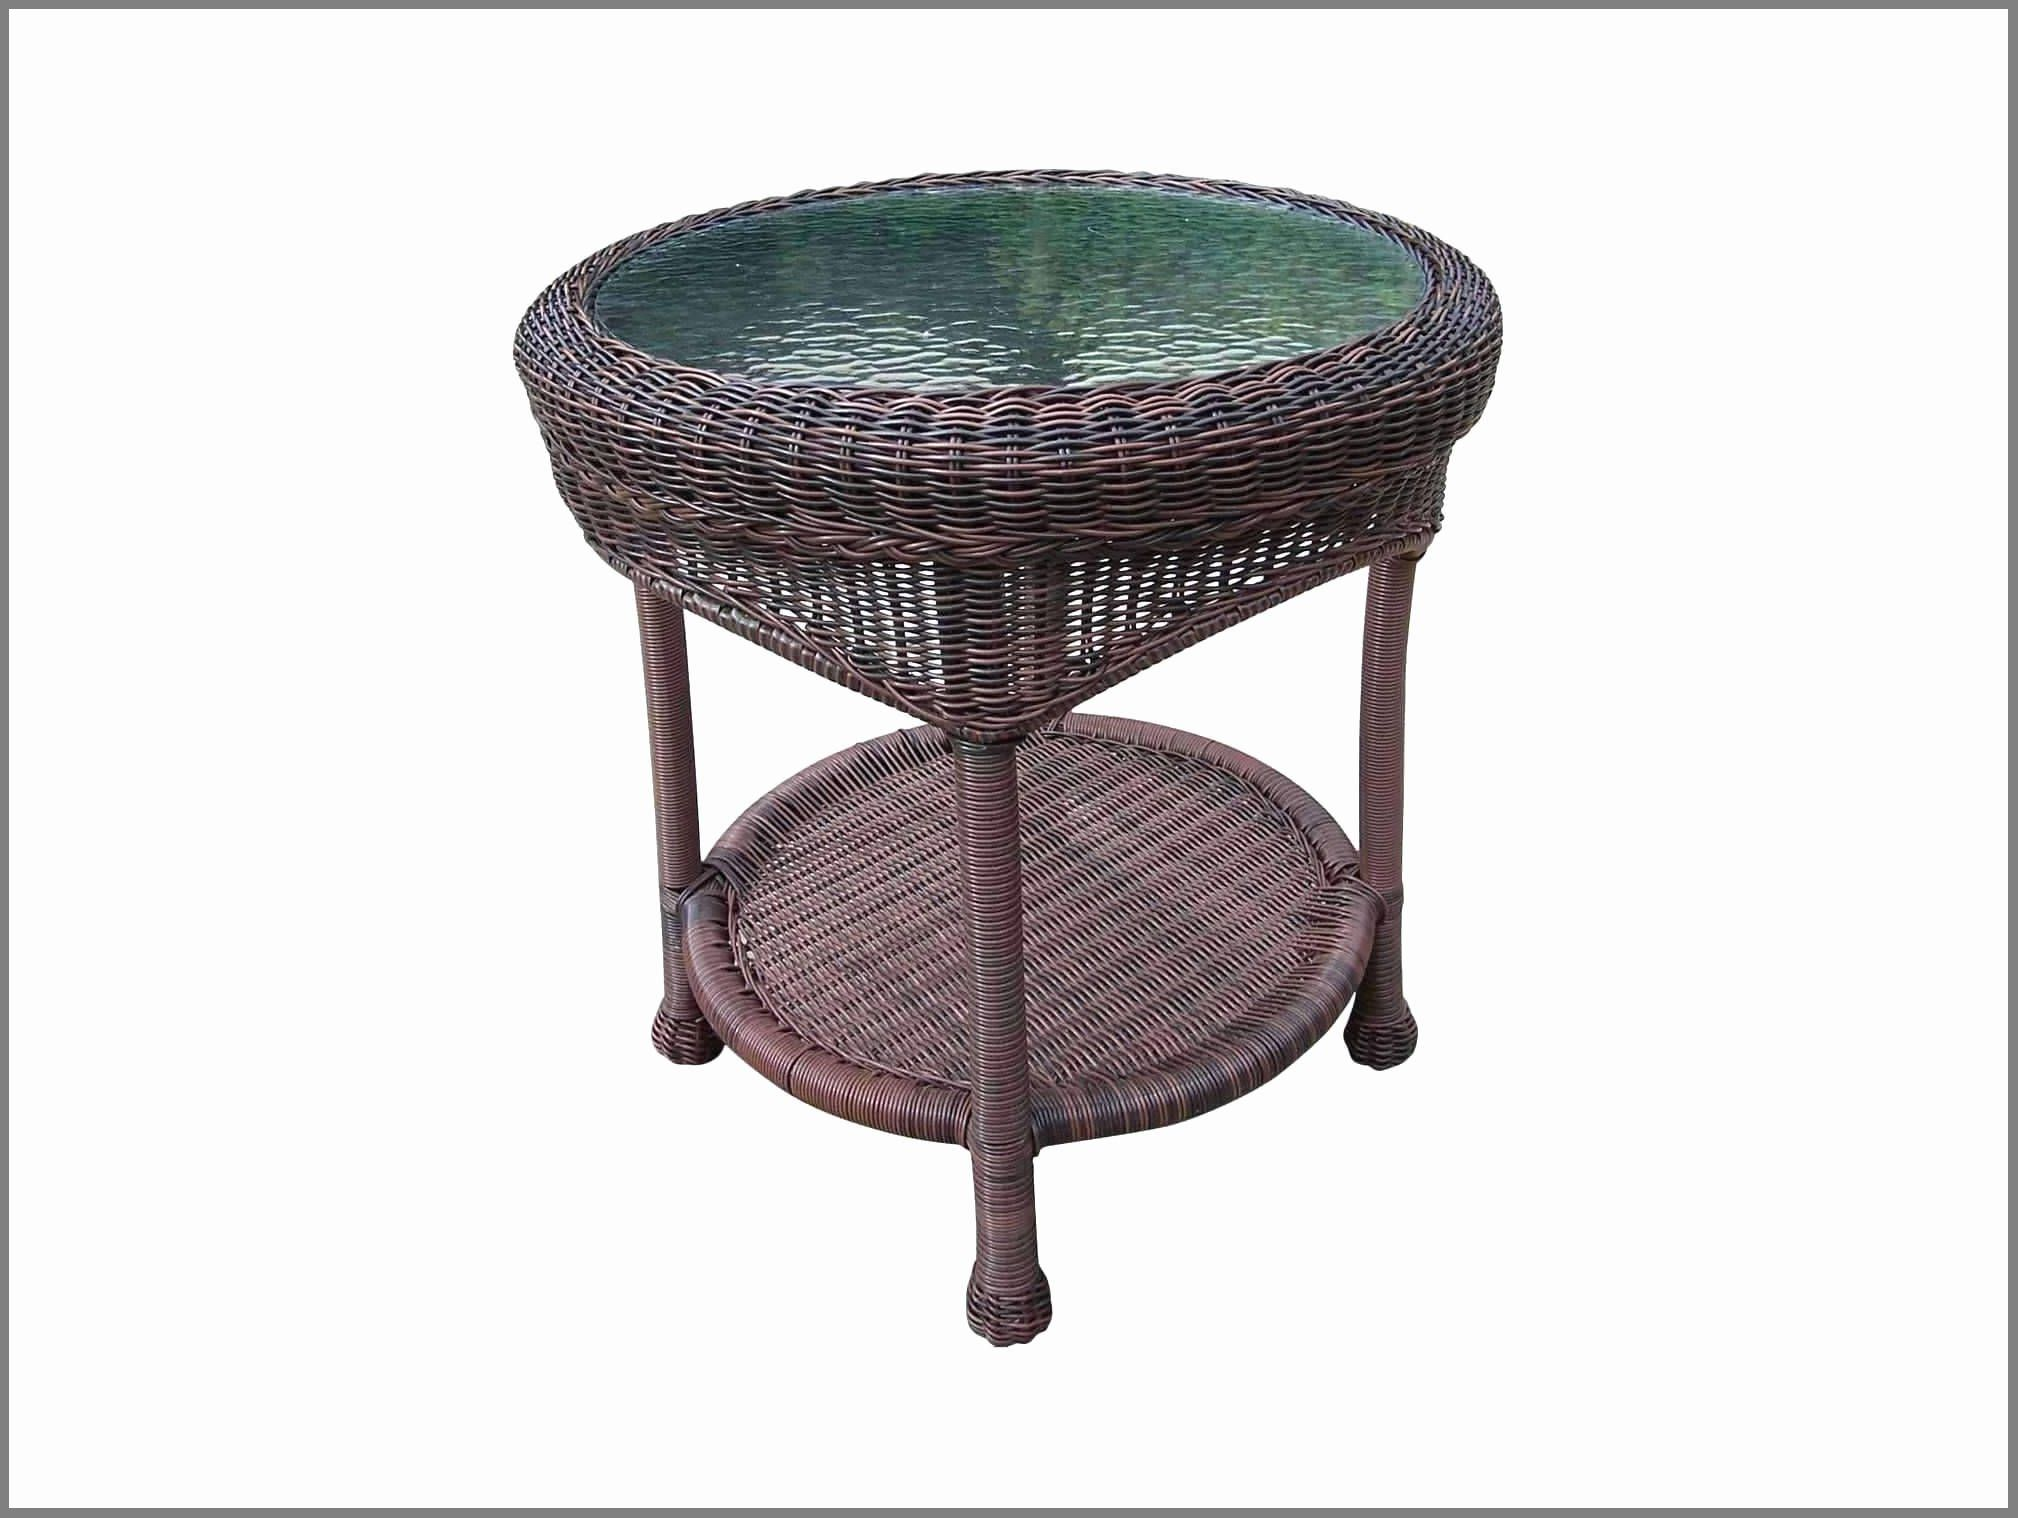 wonderfull round marble top end table decor ideas triangle accent beautifull centerpiece for living room coffee best inch foyer grey curtains wall light shades wrought iron